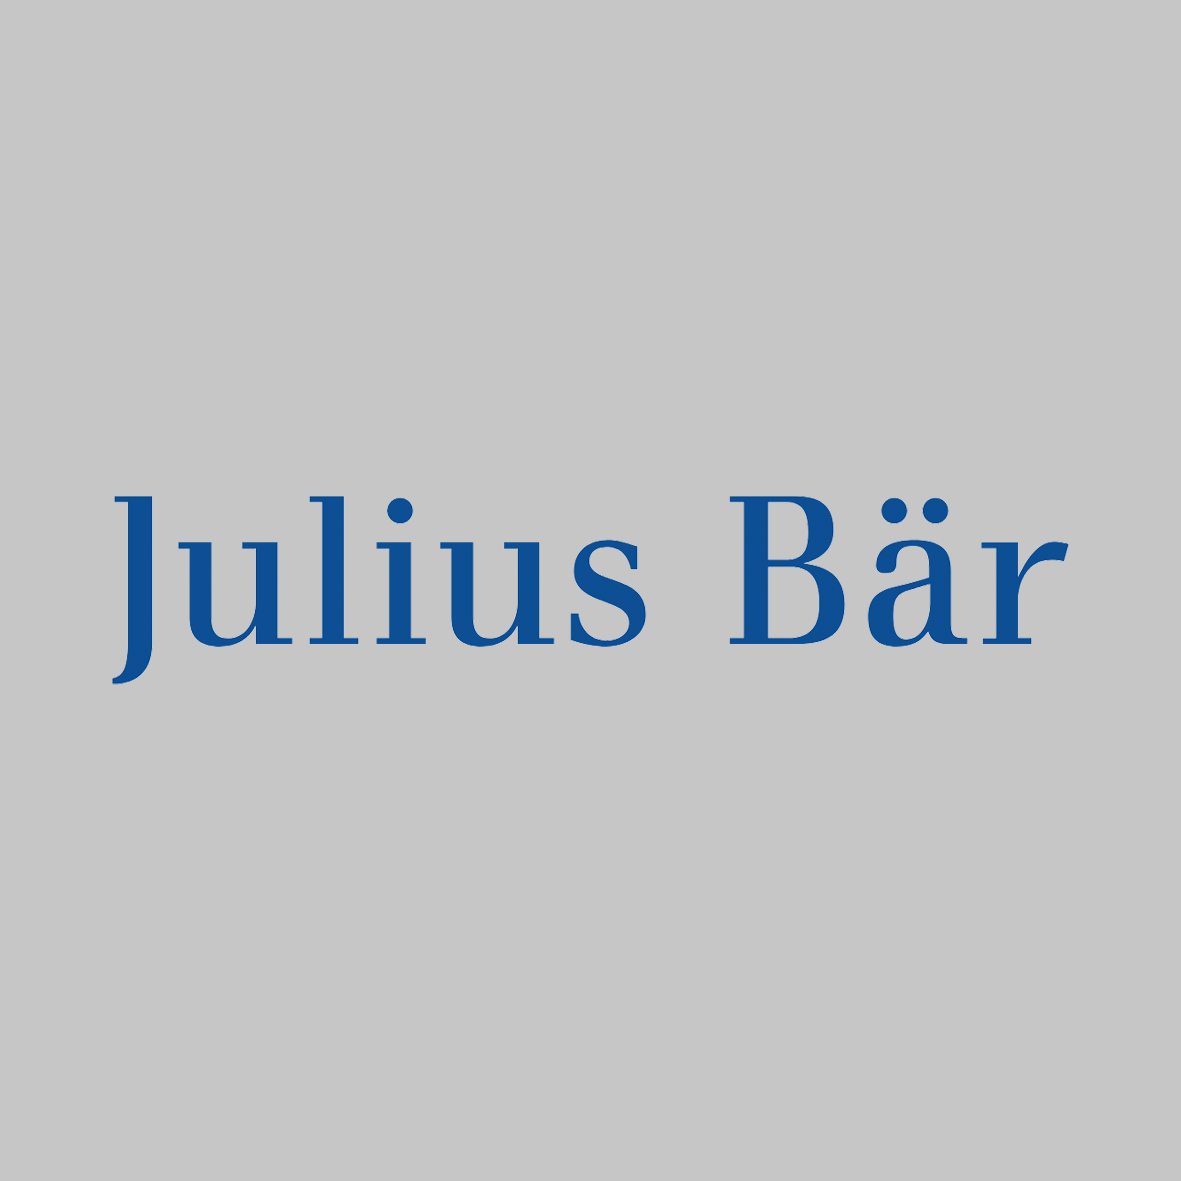 Julius Baer   For Julius Baer, change and challenging the status quo has always been part of our DNA. We recognise that wealth creation now no longer has one face, rather our clients come from a multitude of backgrounds, industries, generations and, of course, are both men and women. For too long the voice of the female investor has not been heard as loudly as her male counterpart and we want to be part of a challenging force to change this. Part of this is changing the face of our relationship managers to match our clients in terms of diversity, part of it is by joining forces with our peers to listen more carefully to female wealth creators and investors.   www.juliusbaer.com